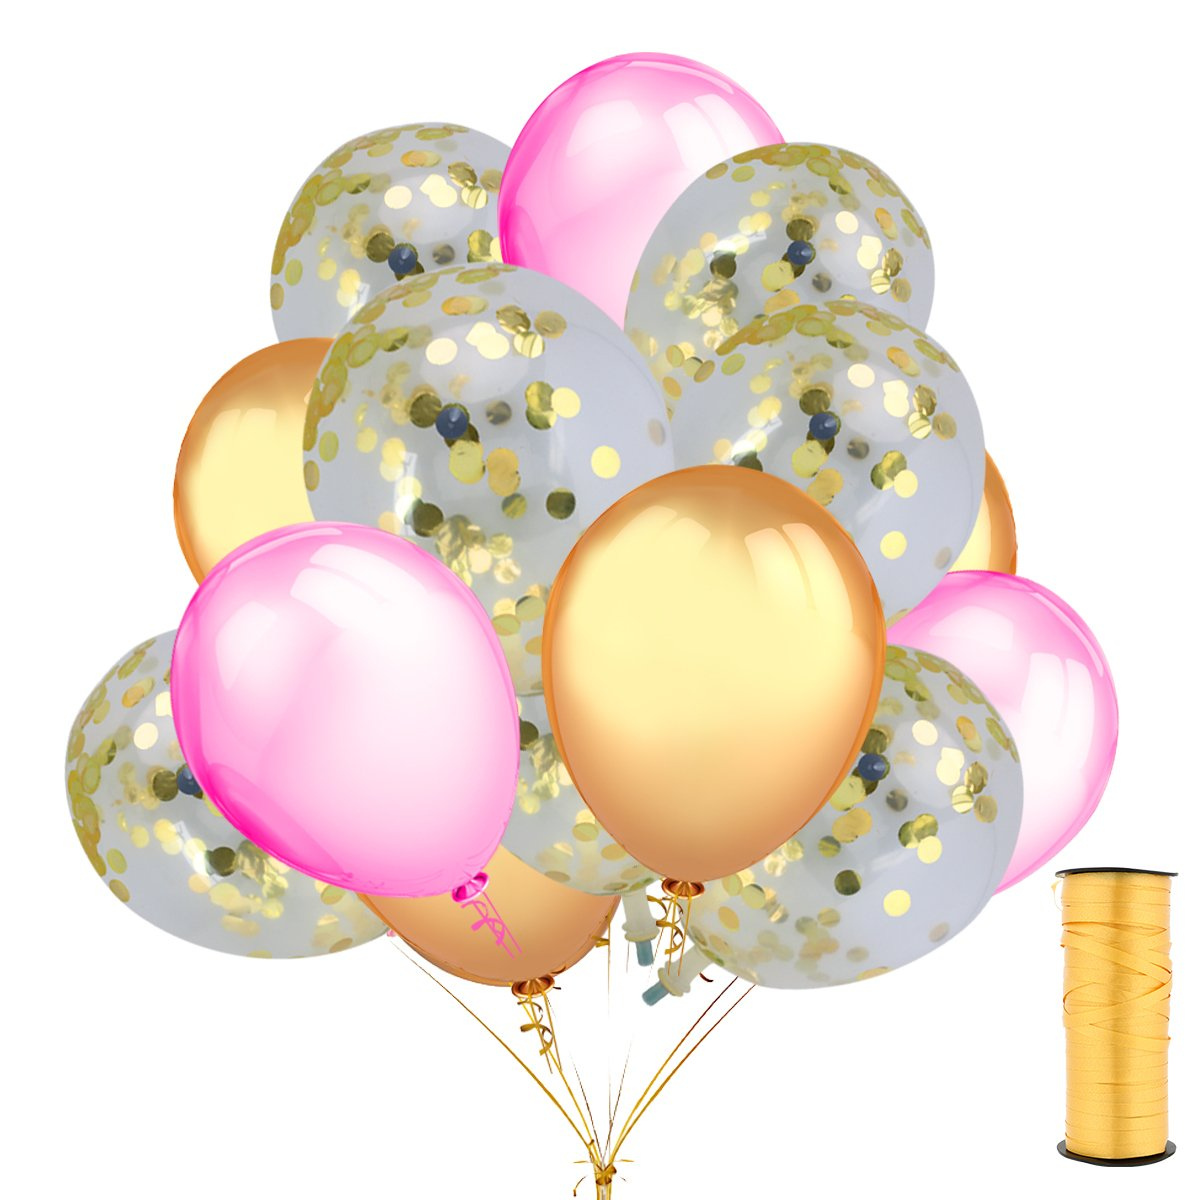 15 Pieces Gold Confetti Balloons with 12 inches Gold and Pink Latex Party Balloons (30 Pcs) and a Roll of Gold Curling Ribbon For Wedding Birthday Boby Shower Party Decorations Supplies